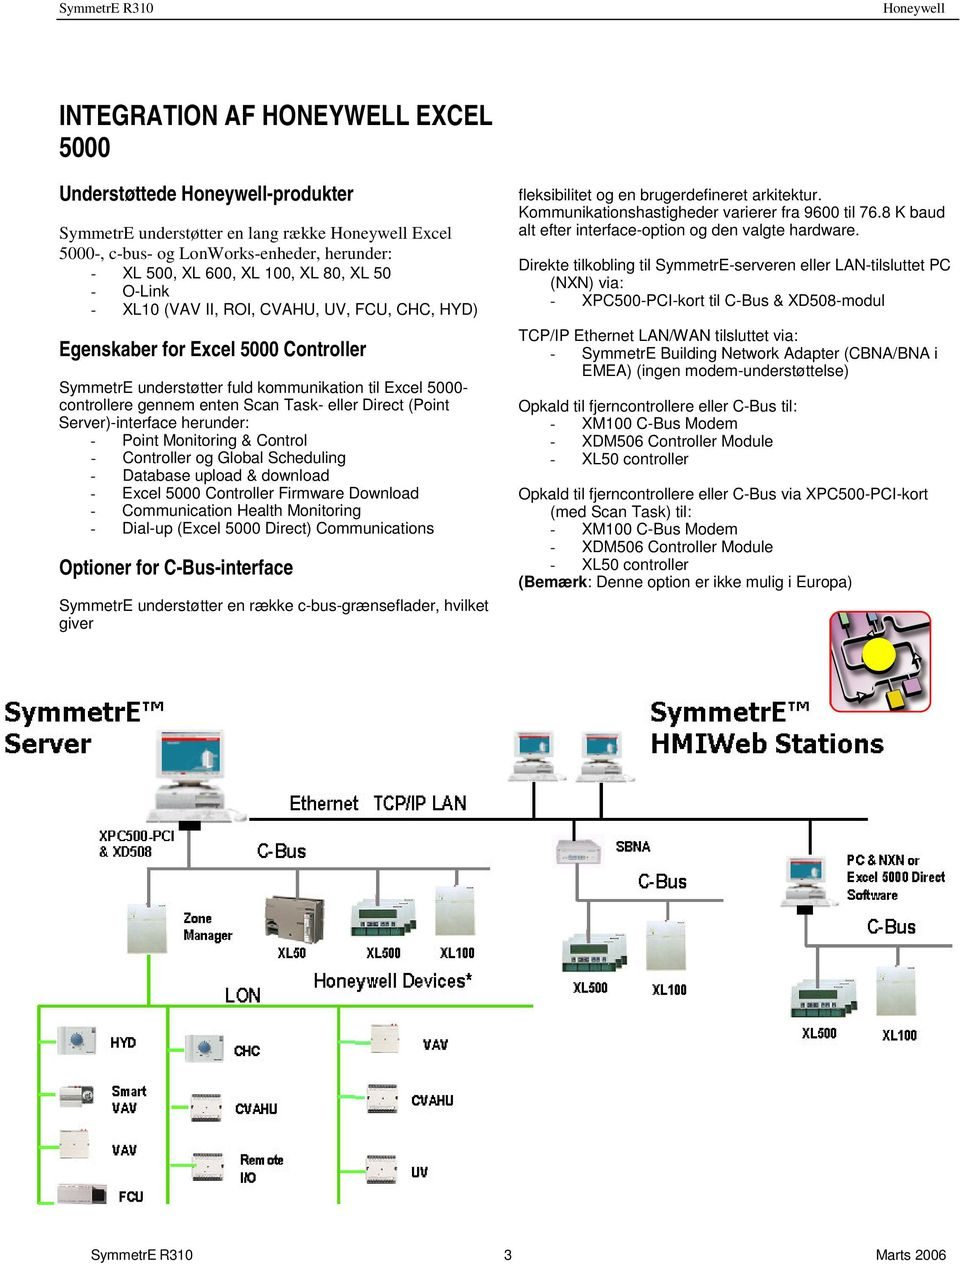 Server)-interface herunder: - Point Monitoring & Control - Controller og Global Scheduling - Database upload & download - Excel 5000 Controller Firmware Download - Communication Health Monitoring -